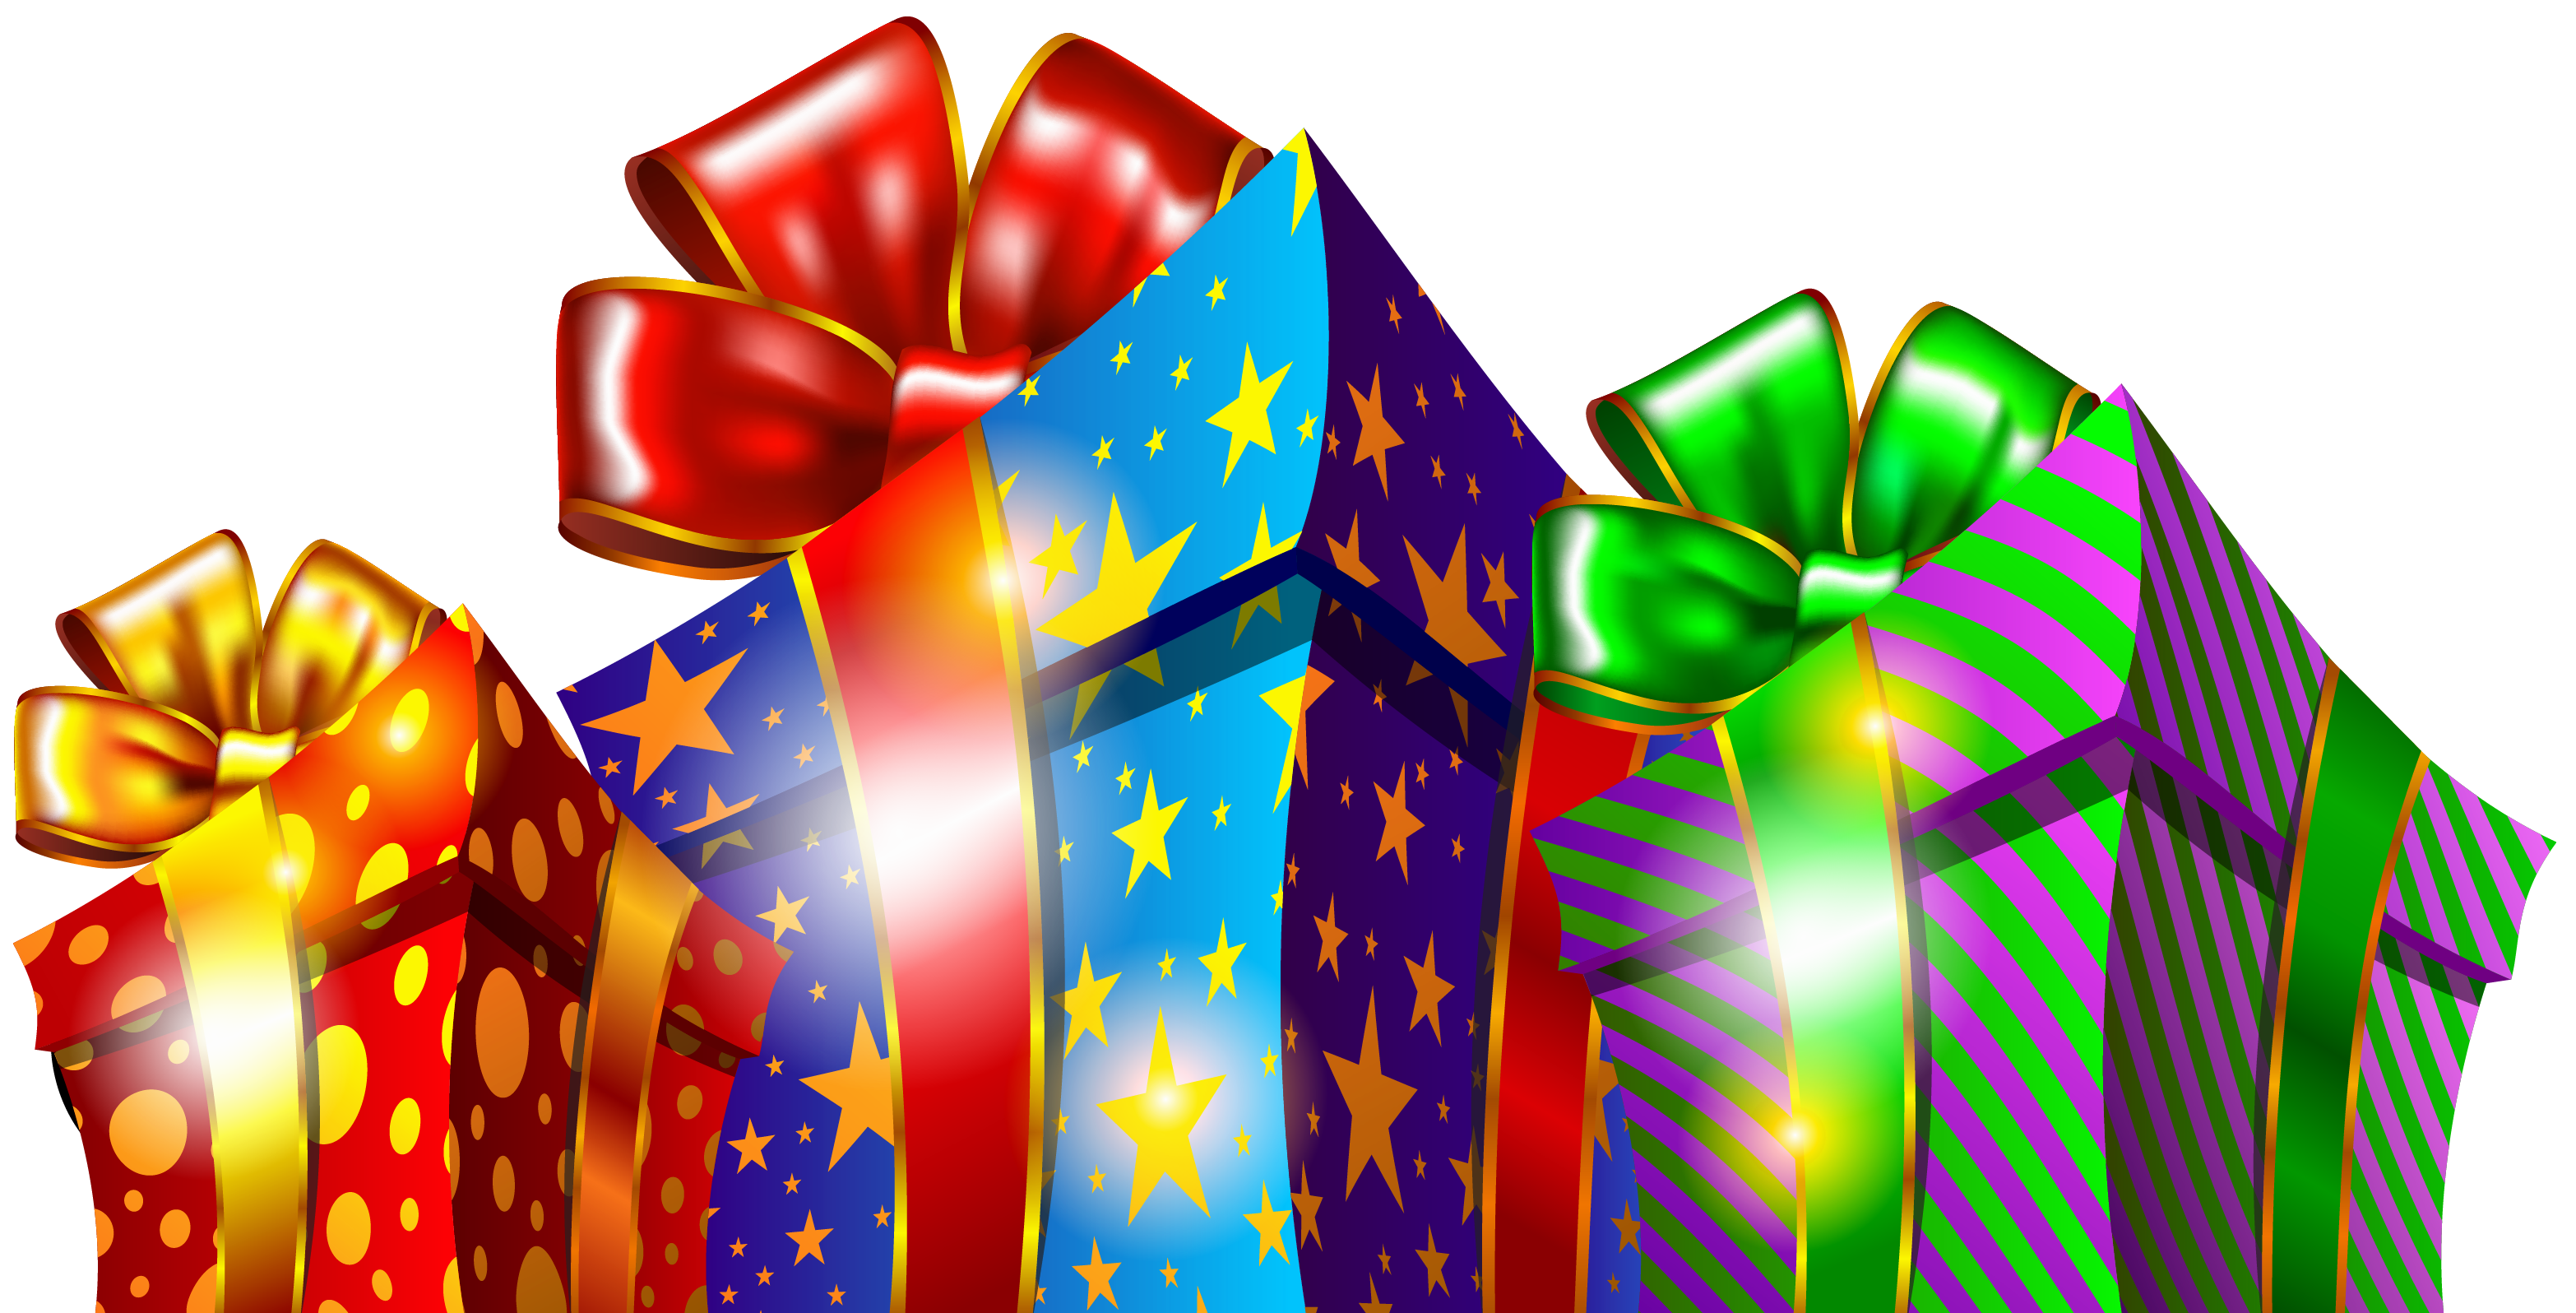 Free cliparts backgrounds of christmas giving. Gift boxes png clipart